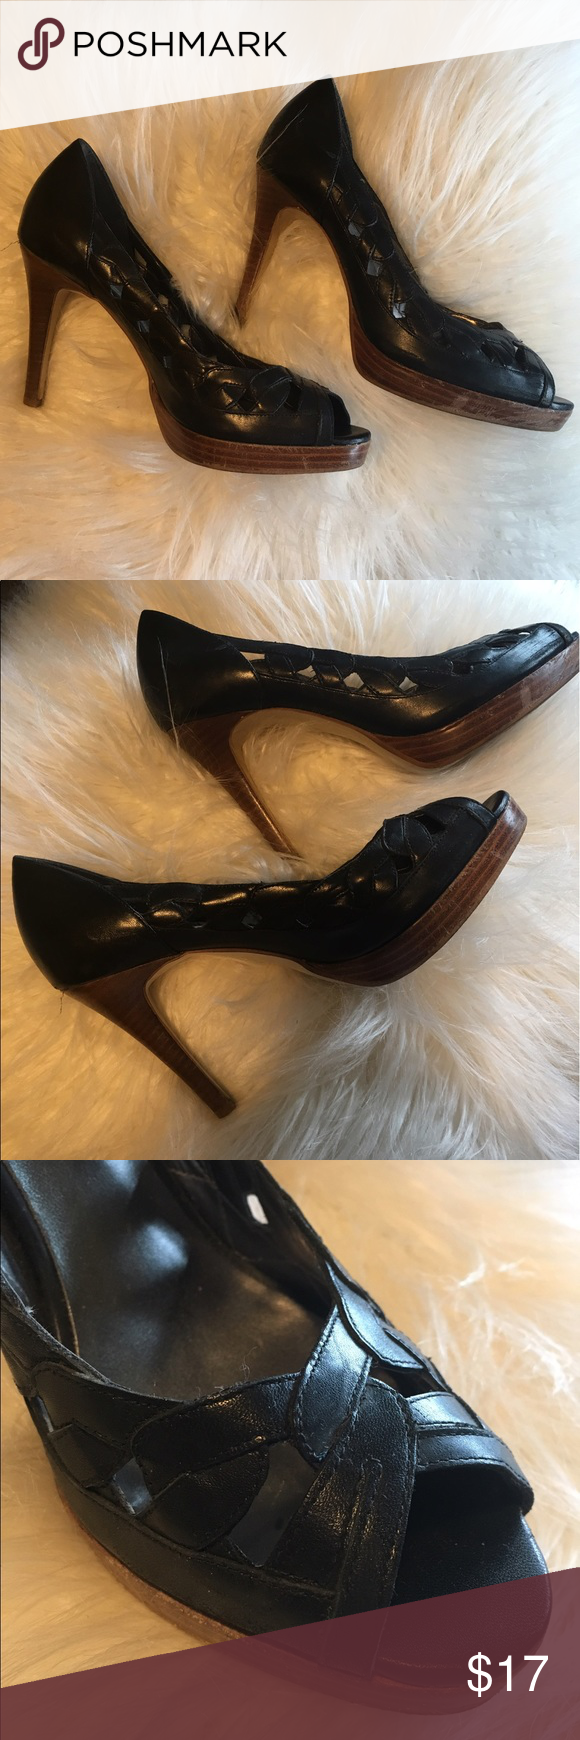 Black Guess pumps Great used condition. Some scuffs, but these pumps have a lot of life left in them! Guess by Marciano Shoes Heels